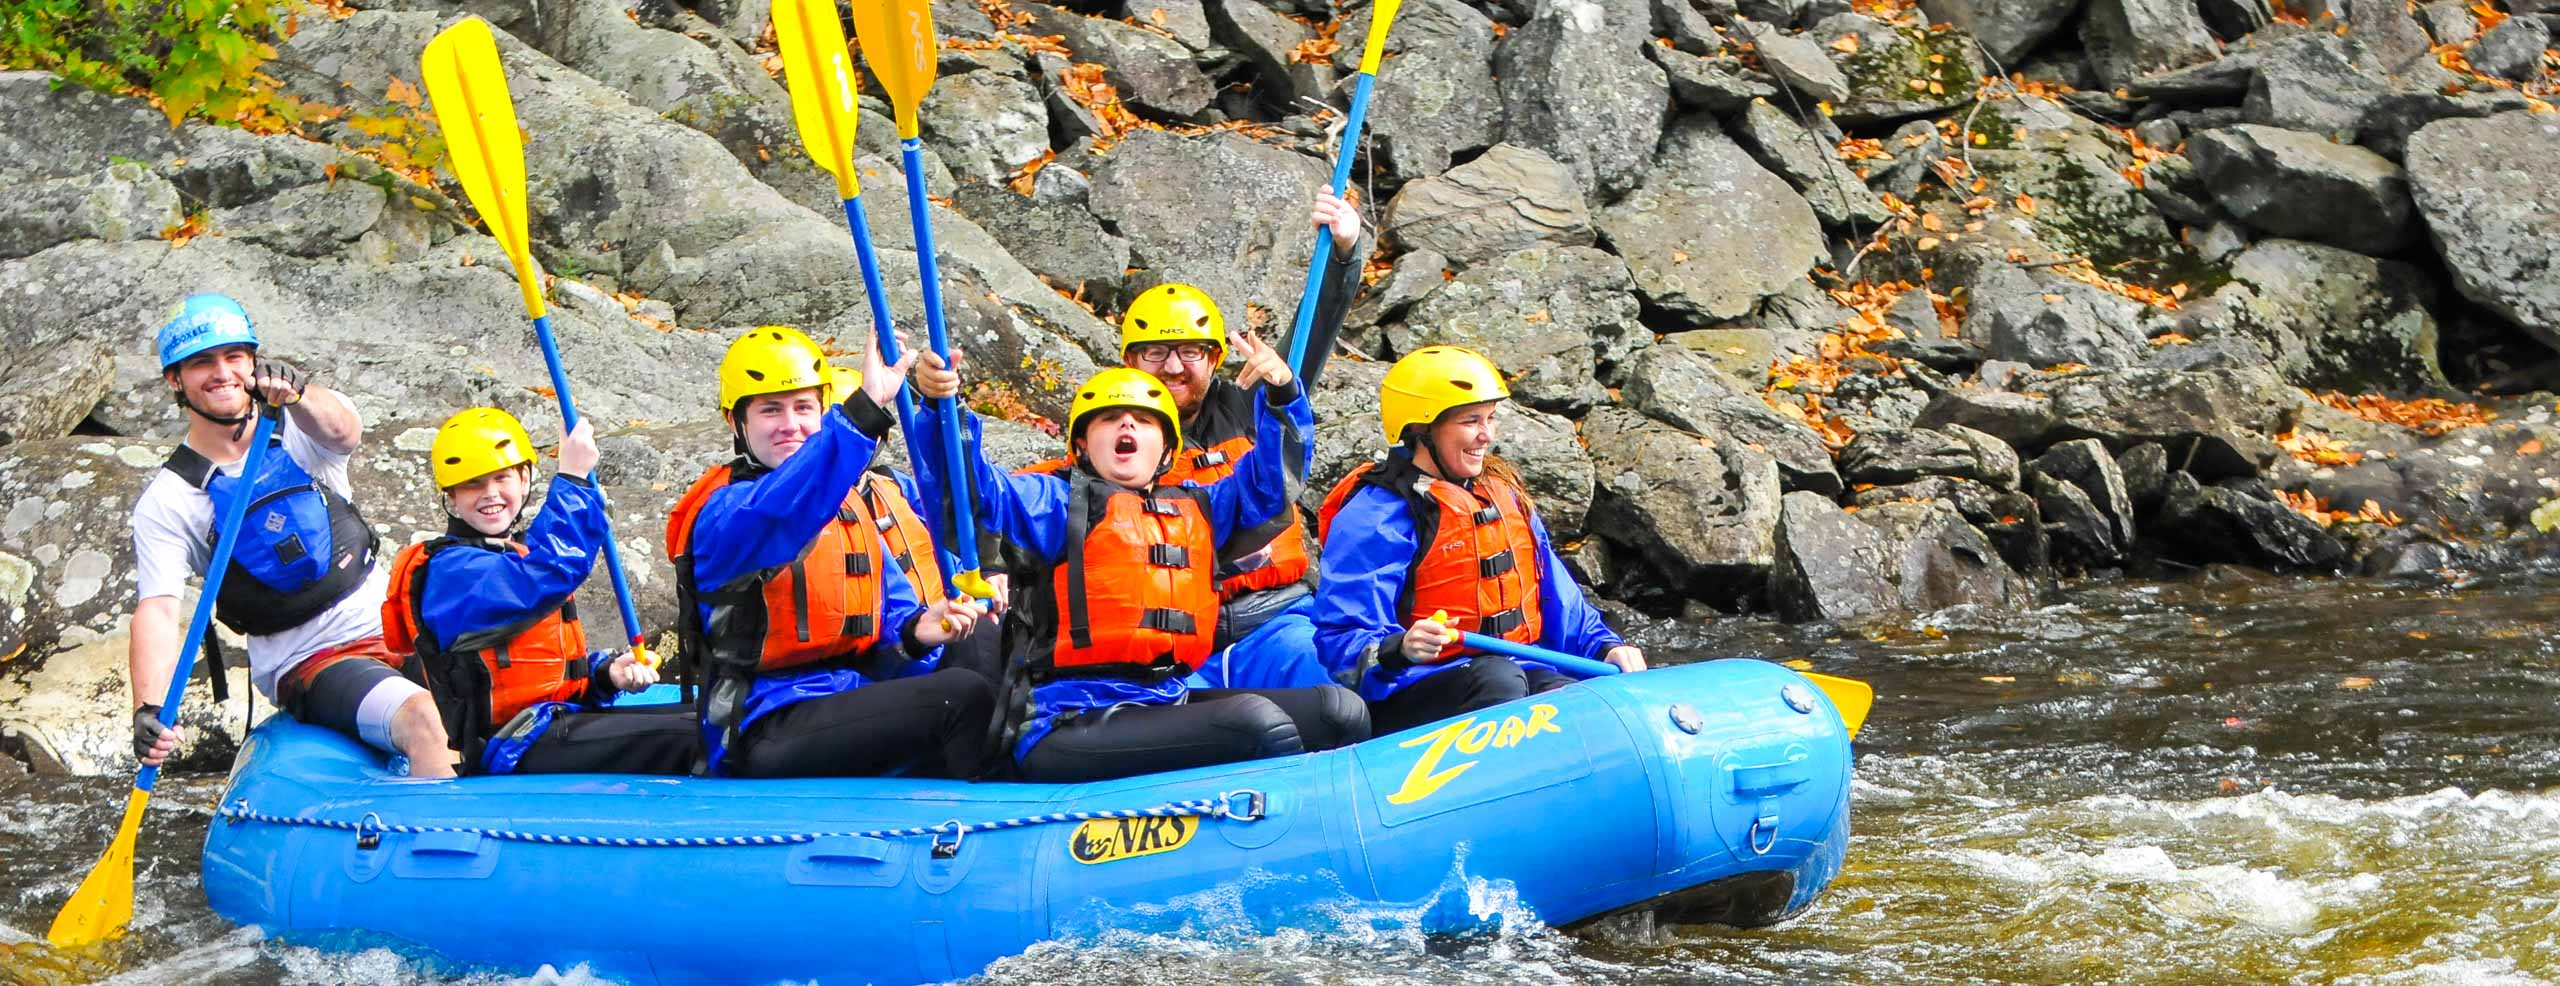 Family in a raft holding their oars in the air excited for their trip